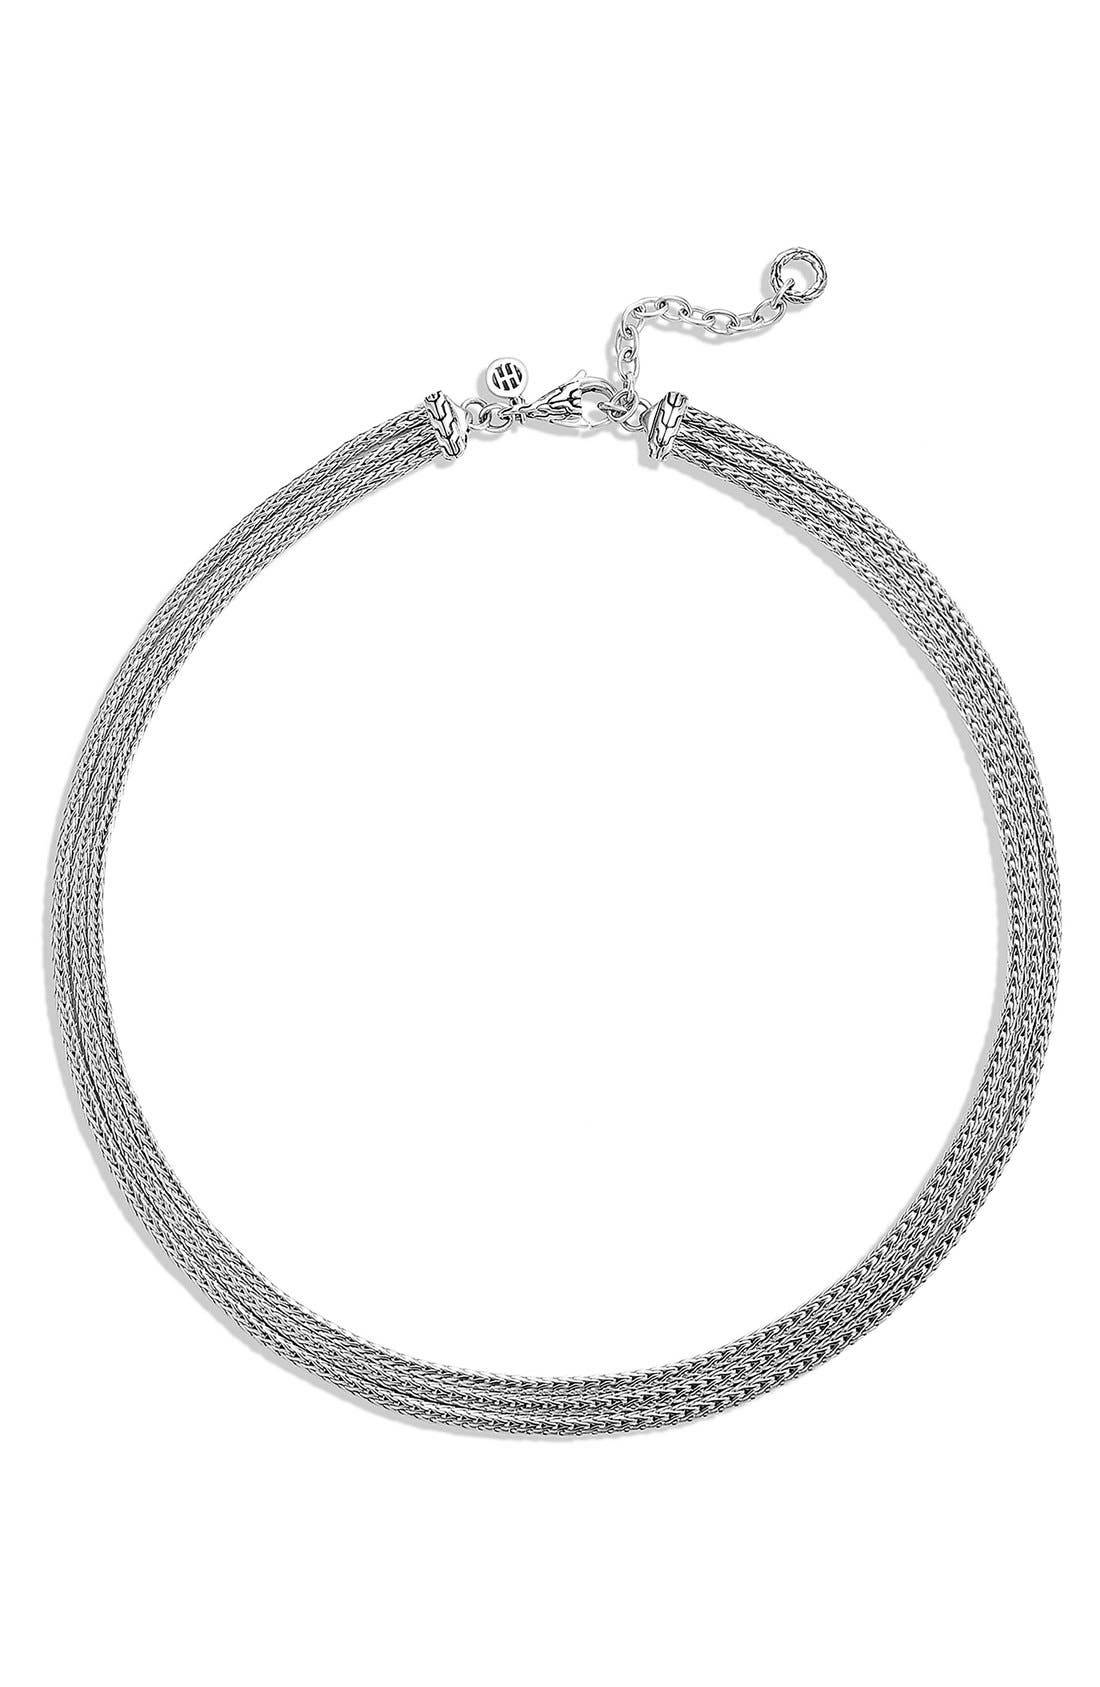 Alternate Image 1 Selected - John Hardy 'Classic Chain' Three Row Collar Necklace